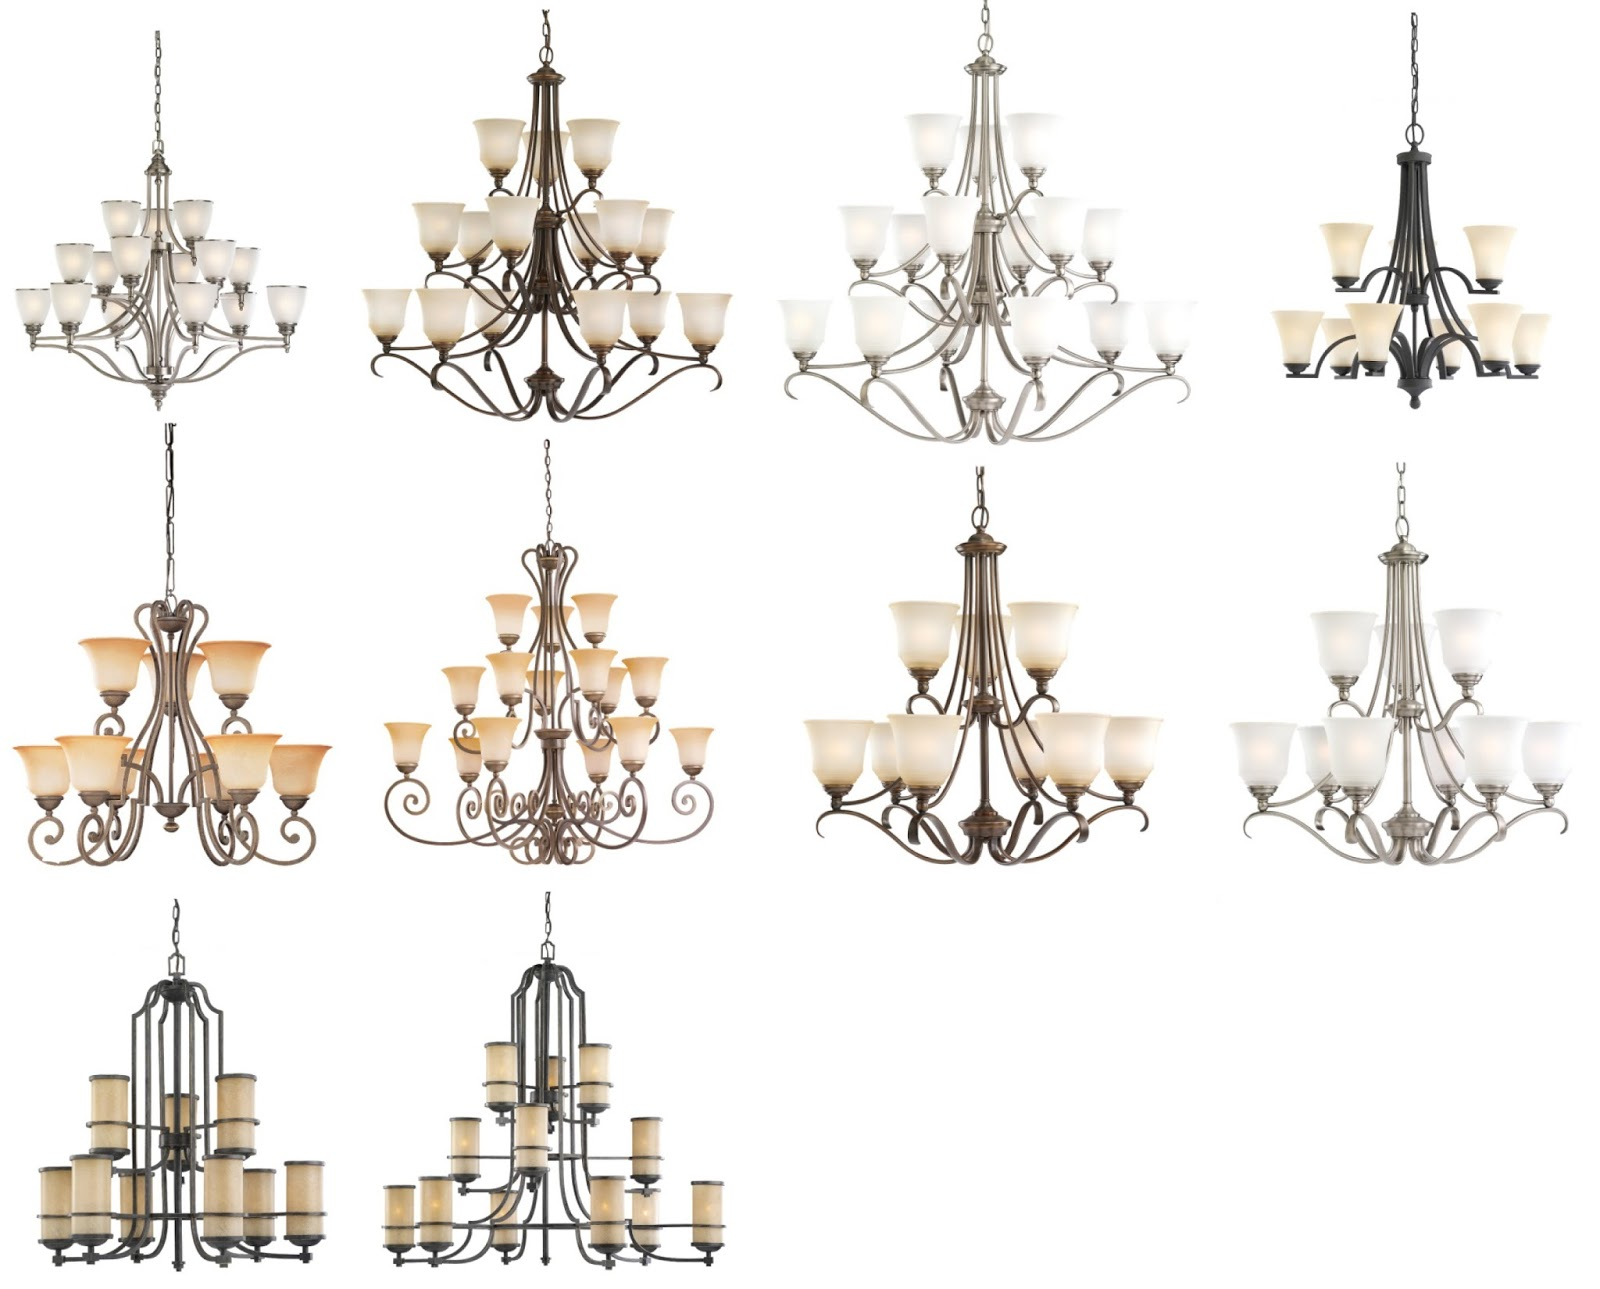 Unique Collections Of Cheap Chandeliers: Different Types ...